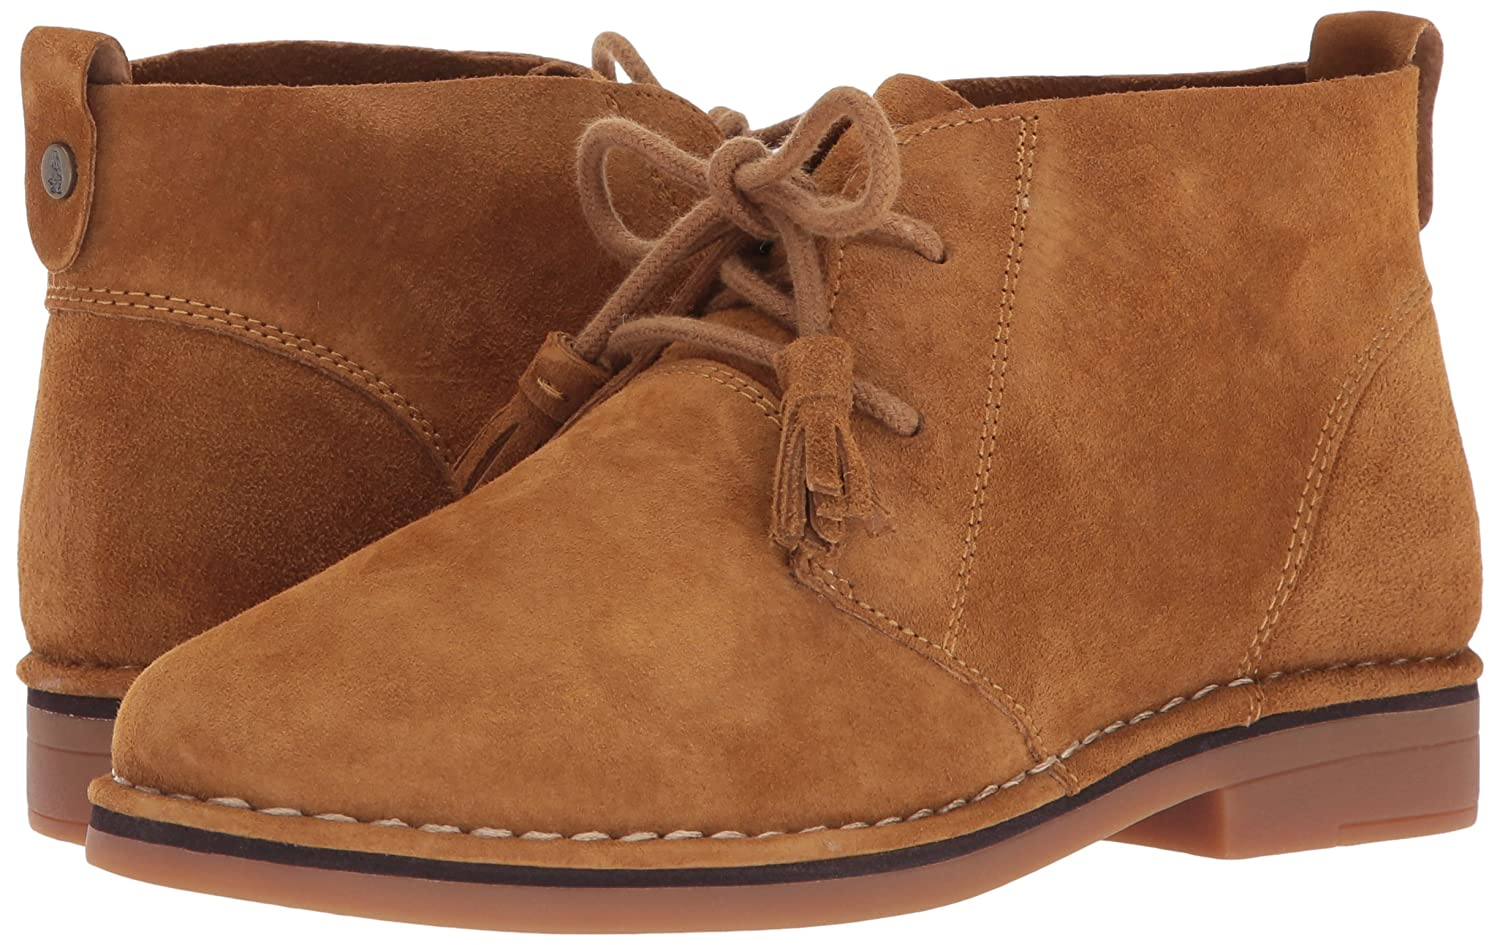 Hush Puppies Women's Cyra Catelyn Ankle Bootie B01NAYOIV5 7 M US|Camel